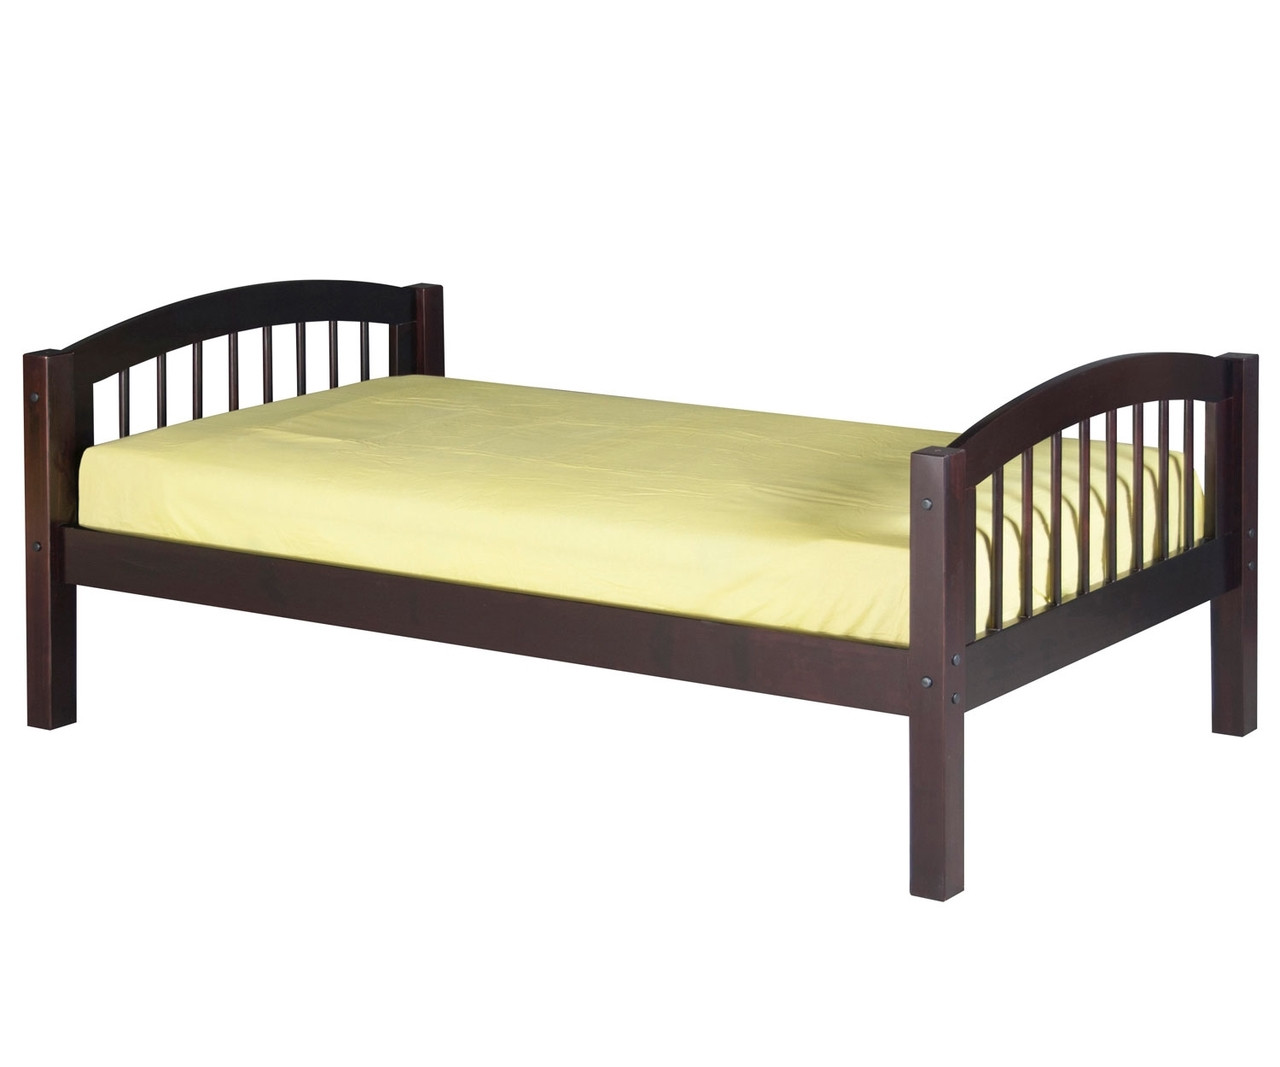 Camaflexi Twin Platform Bed In Cappuccino Finish E102 Camaflexi Furniture Solid Wood Kids